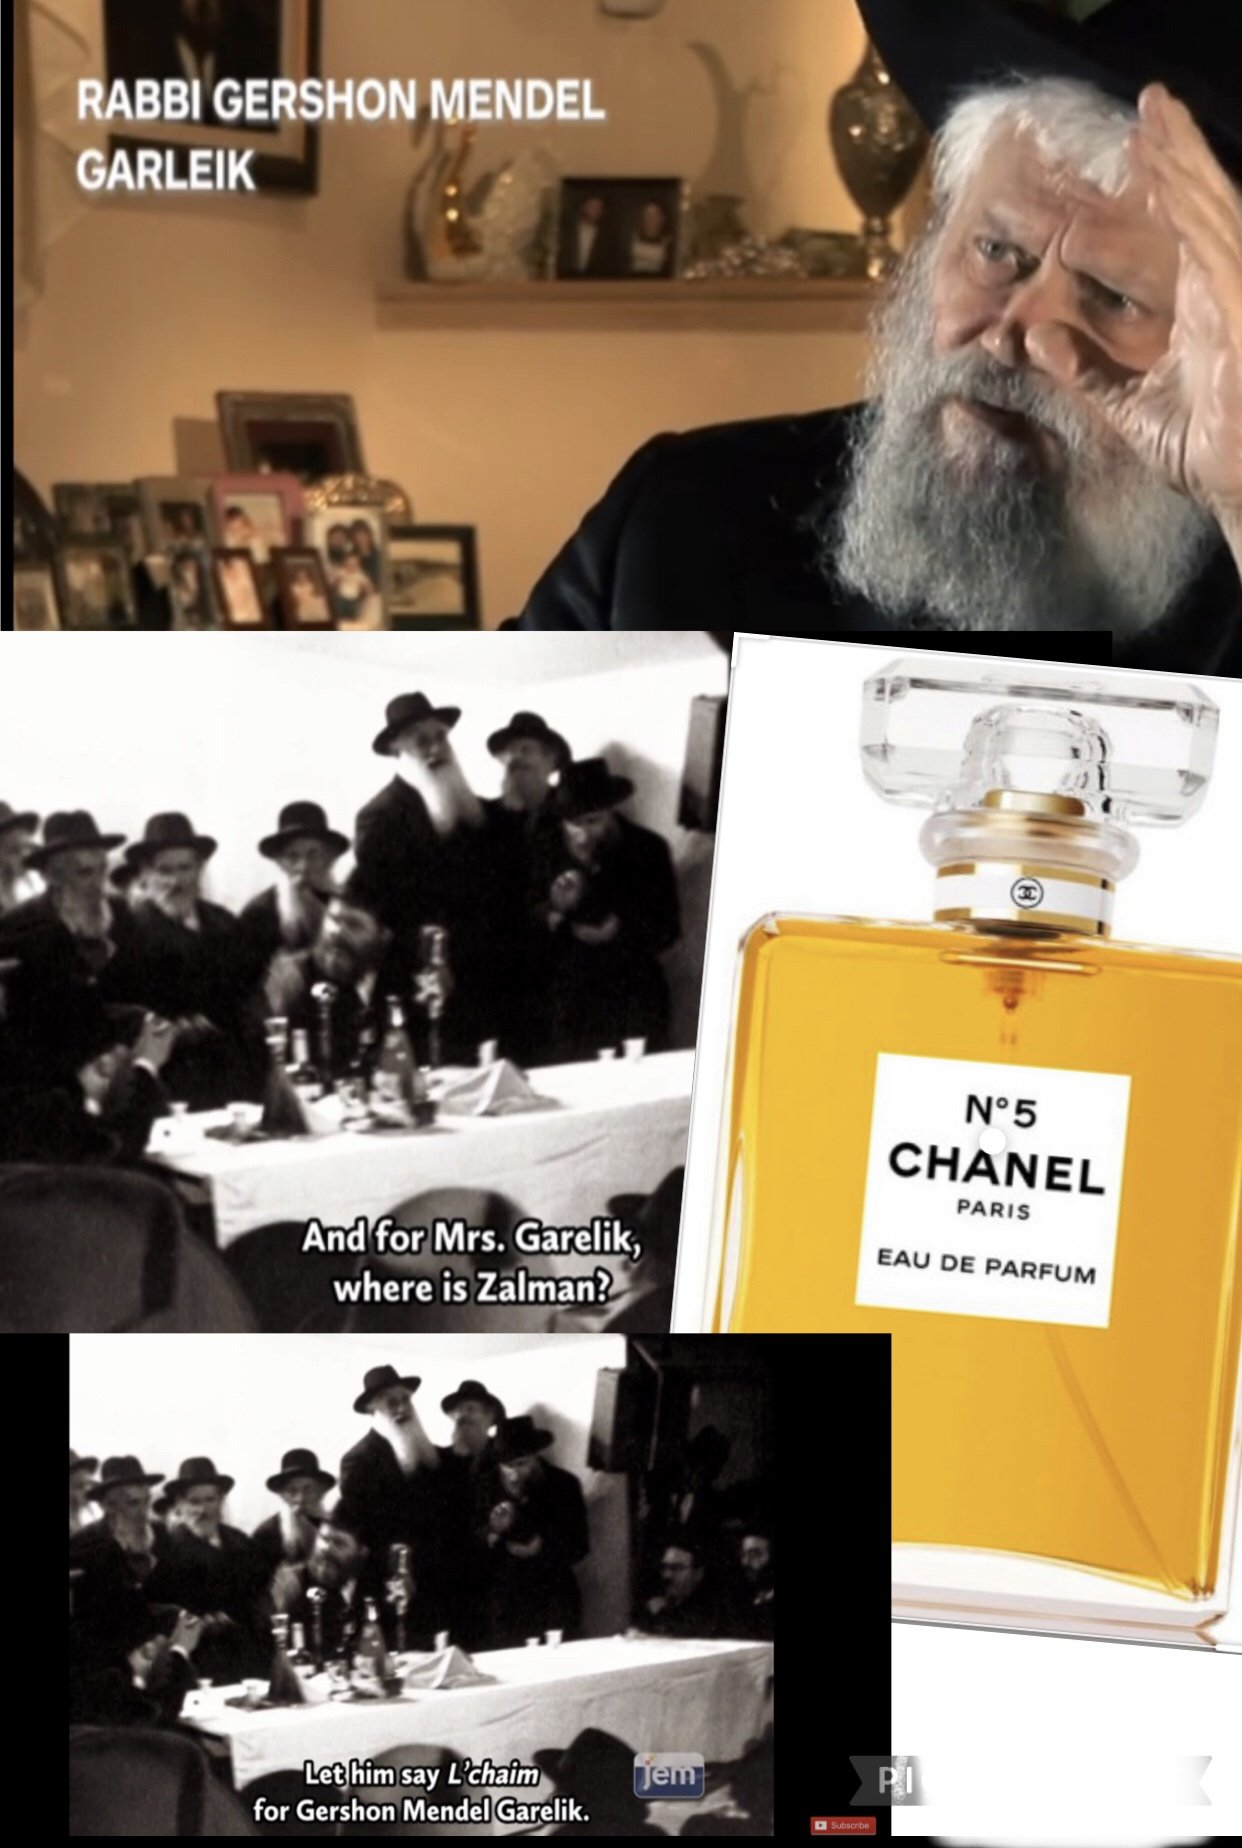 A rabbi in love and Chanel n.5